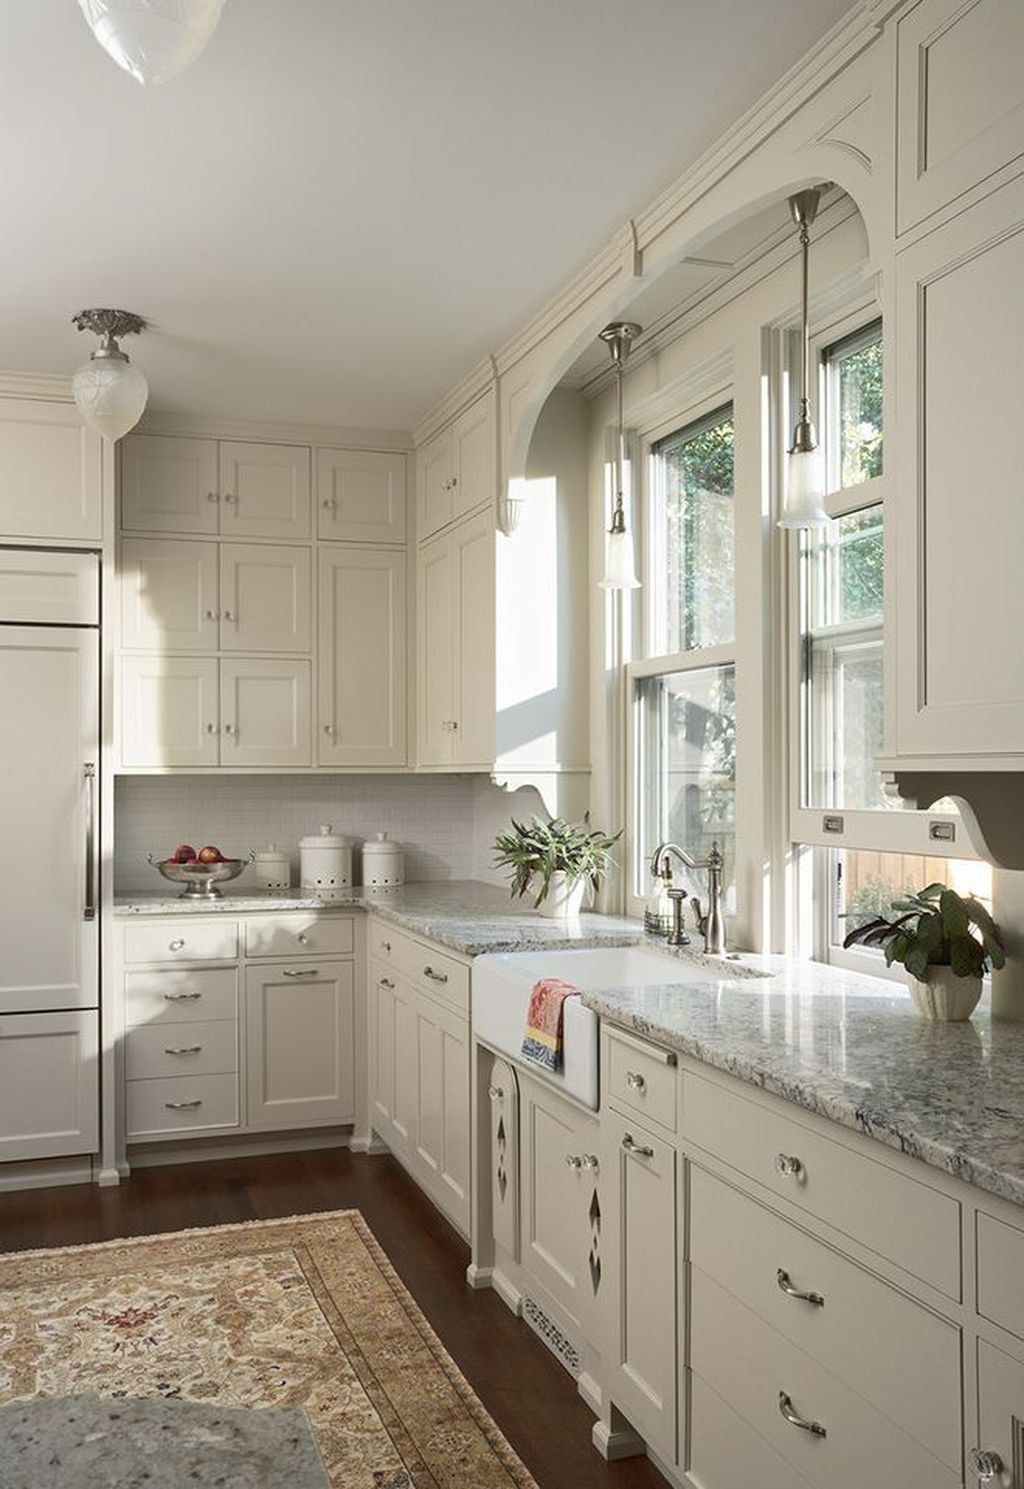 Inspiring Traditional Victorian Kitchen Remodel Ideas 9 ...